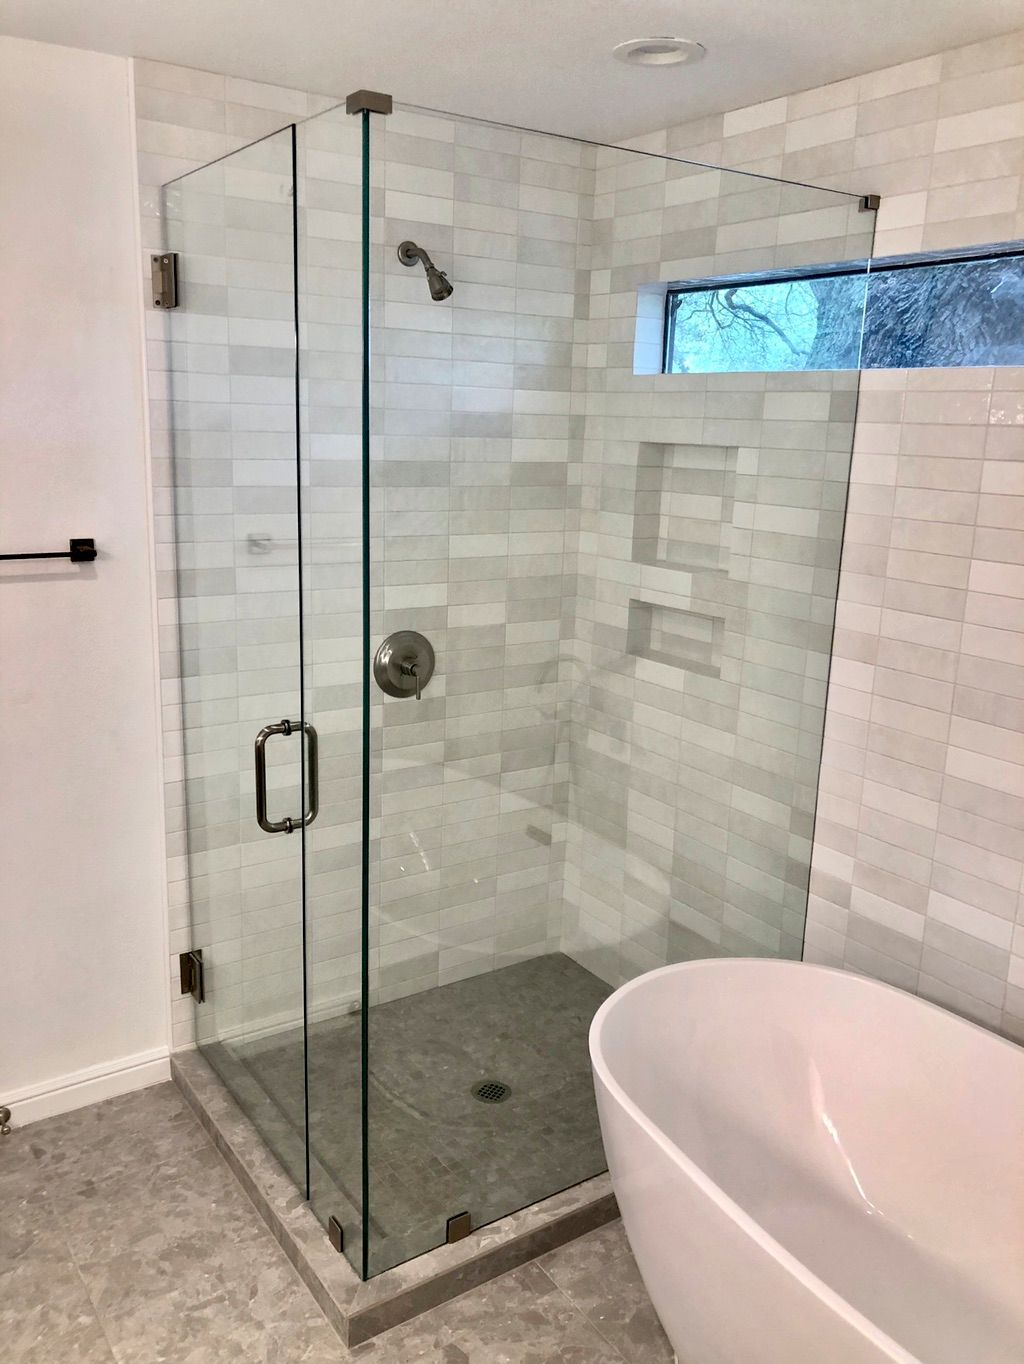 Clearview frameless